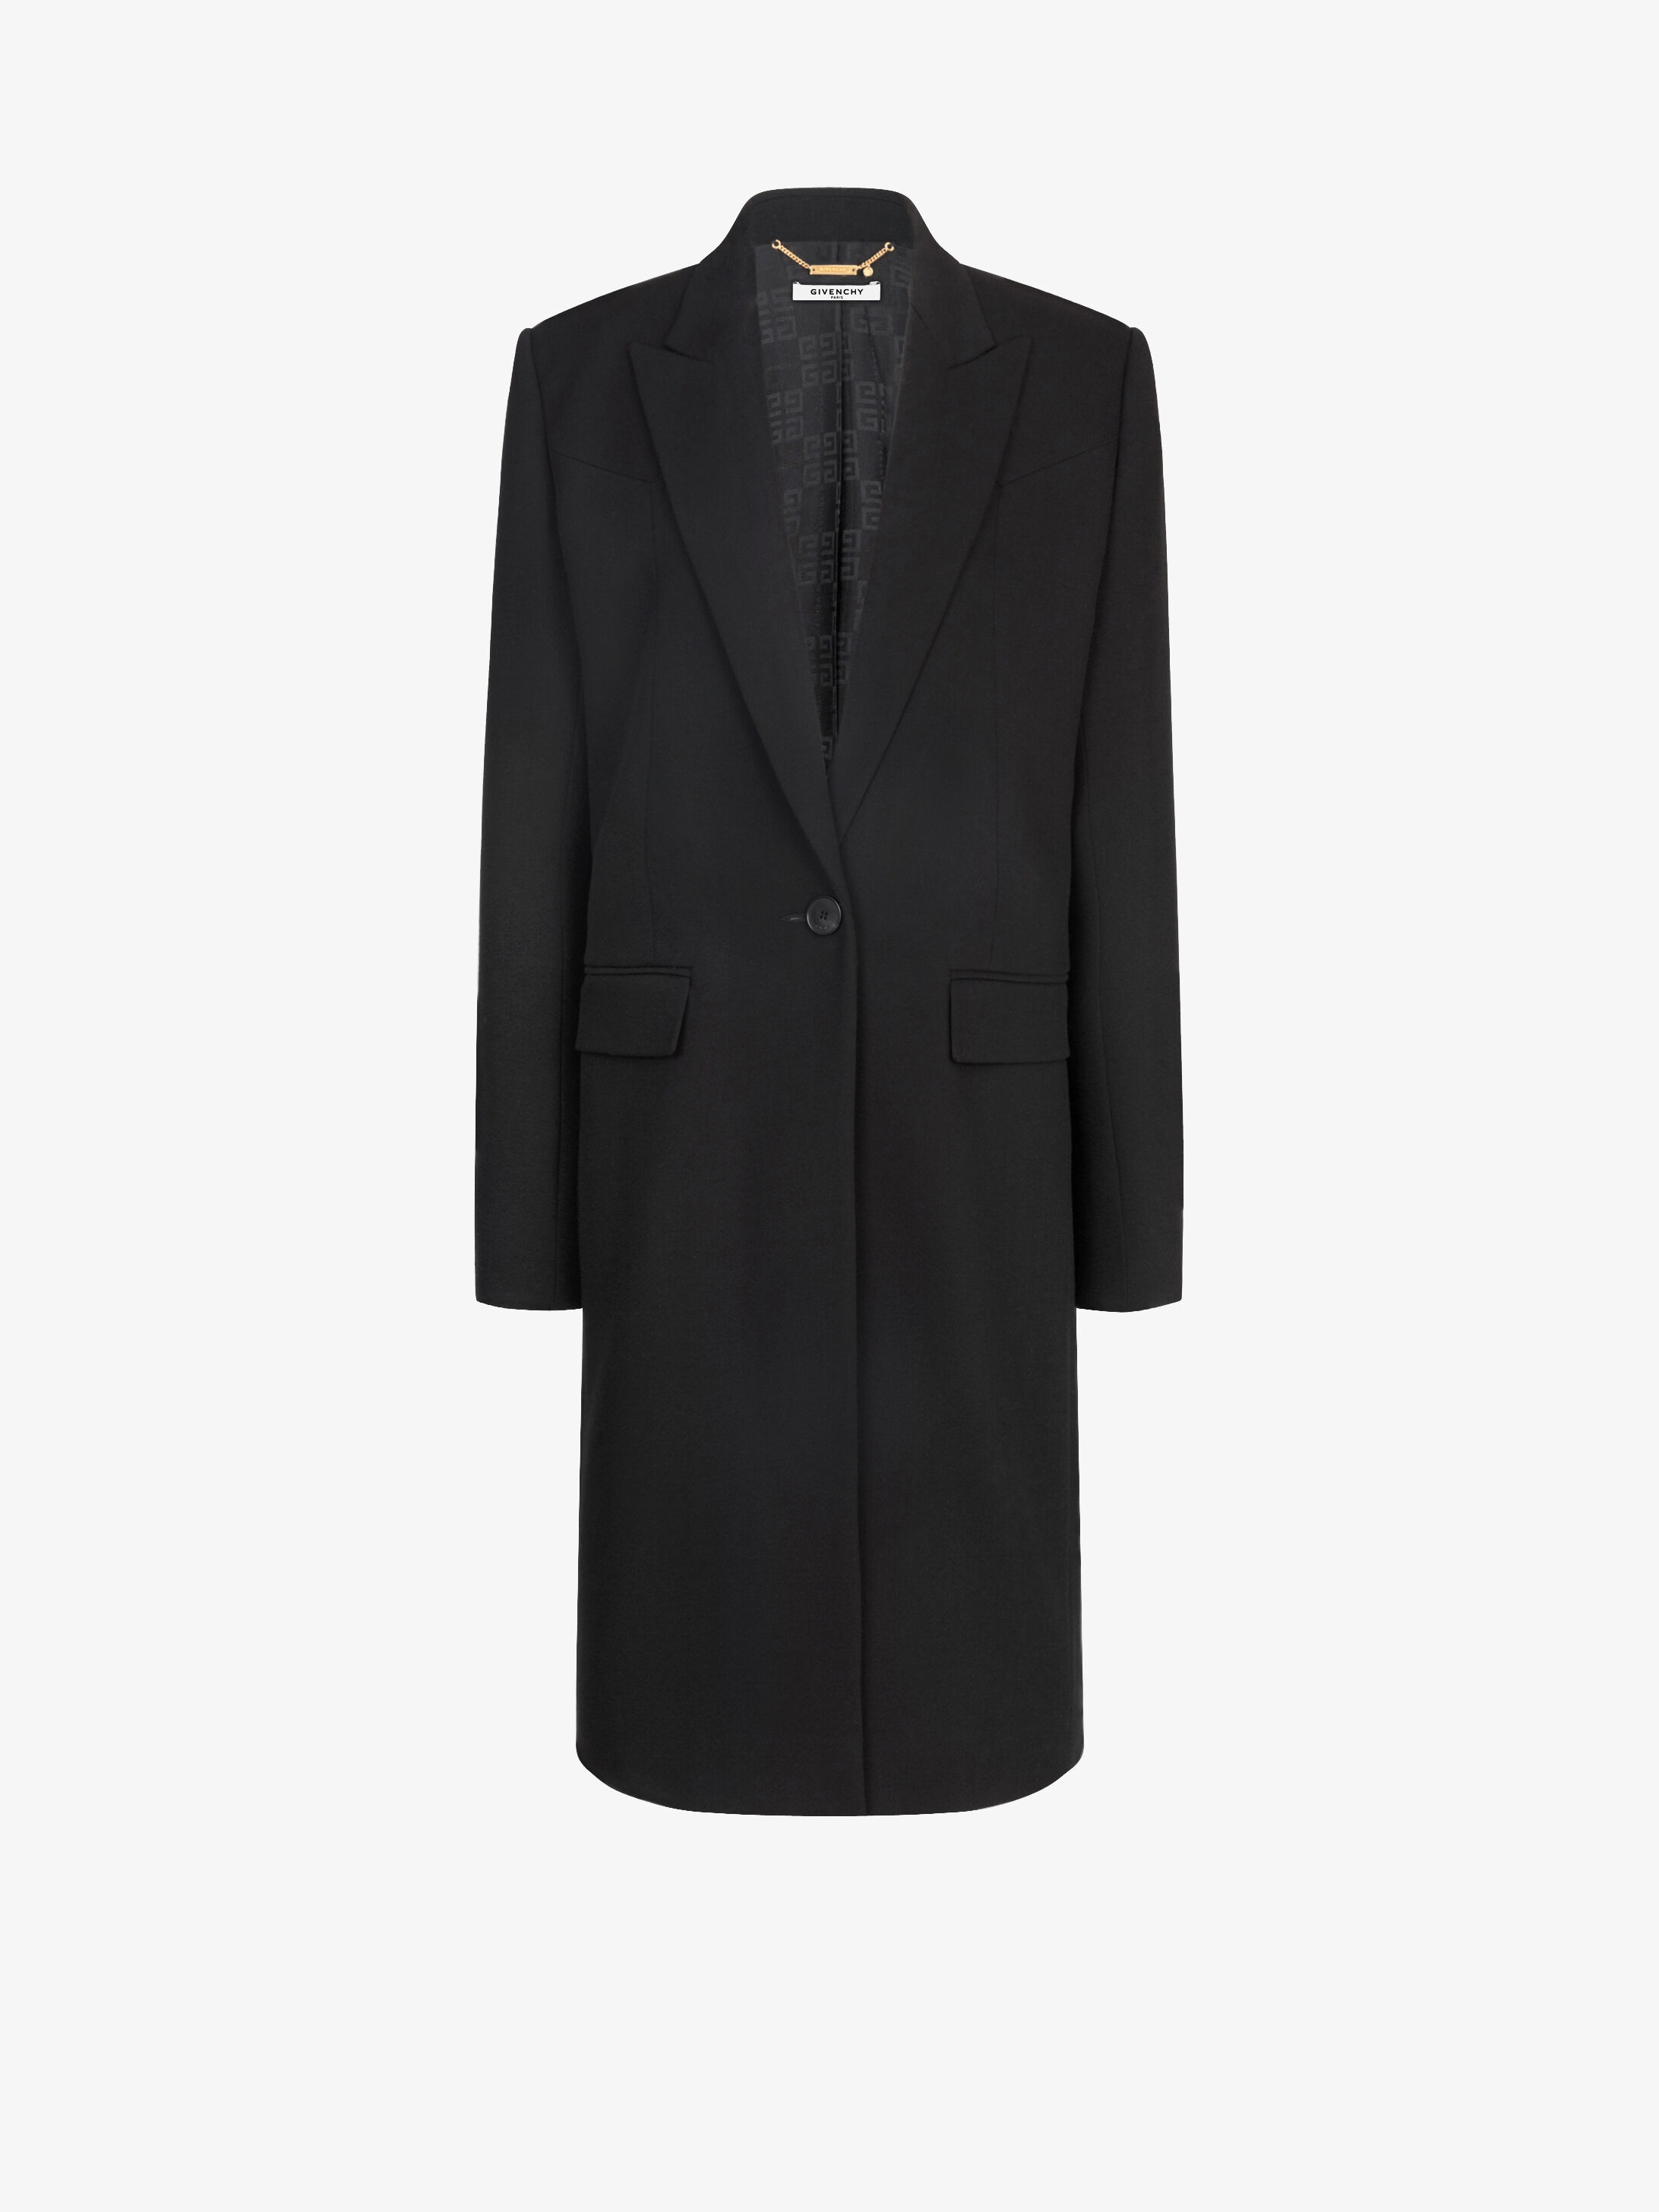 99236c3eda06 Women s Coats and Outerwear collection by Givenchy.